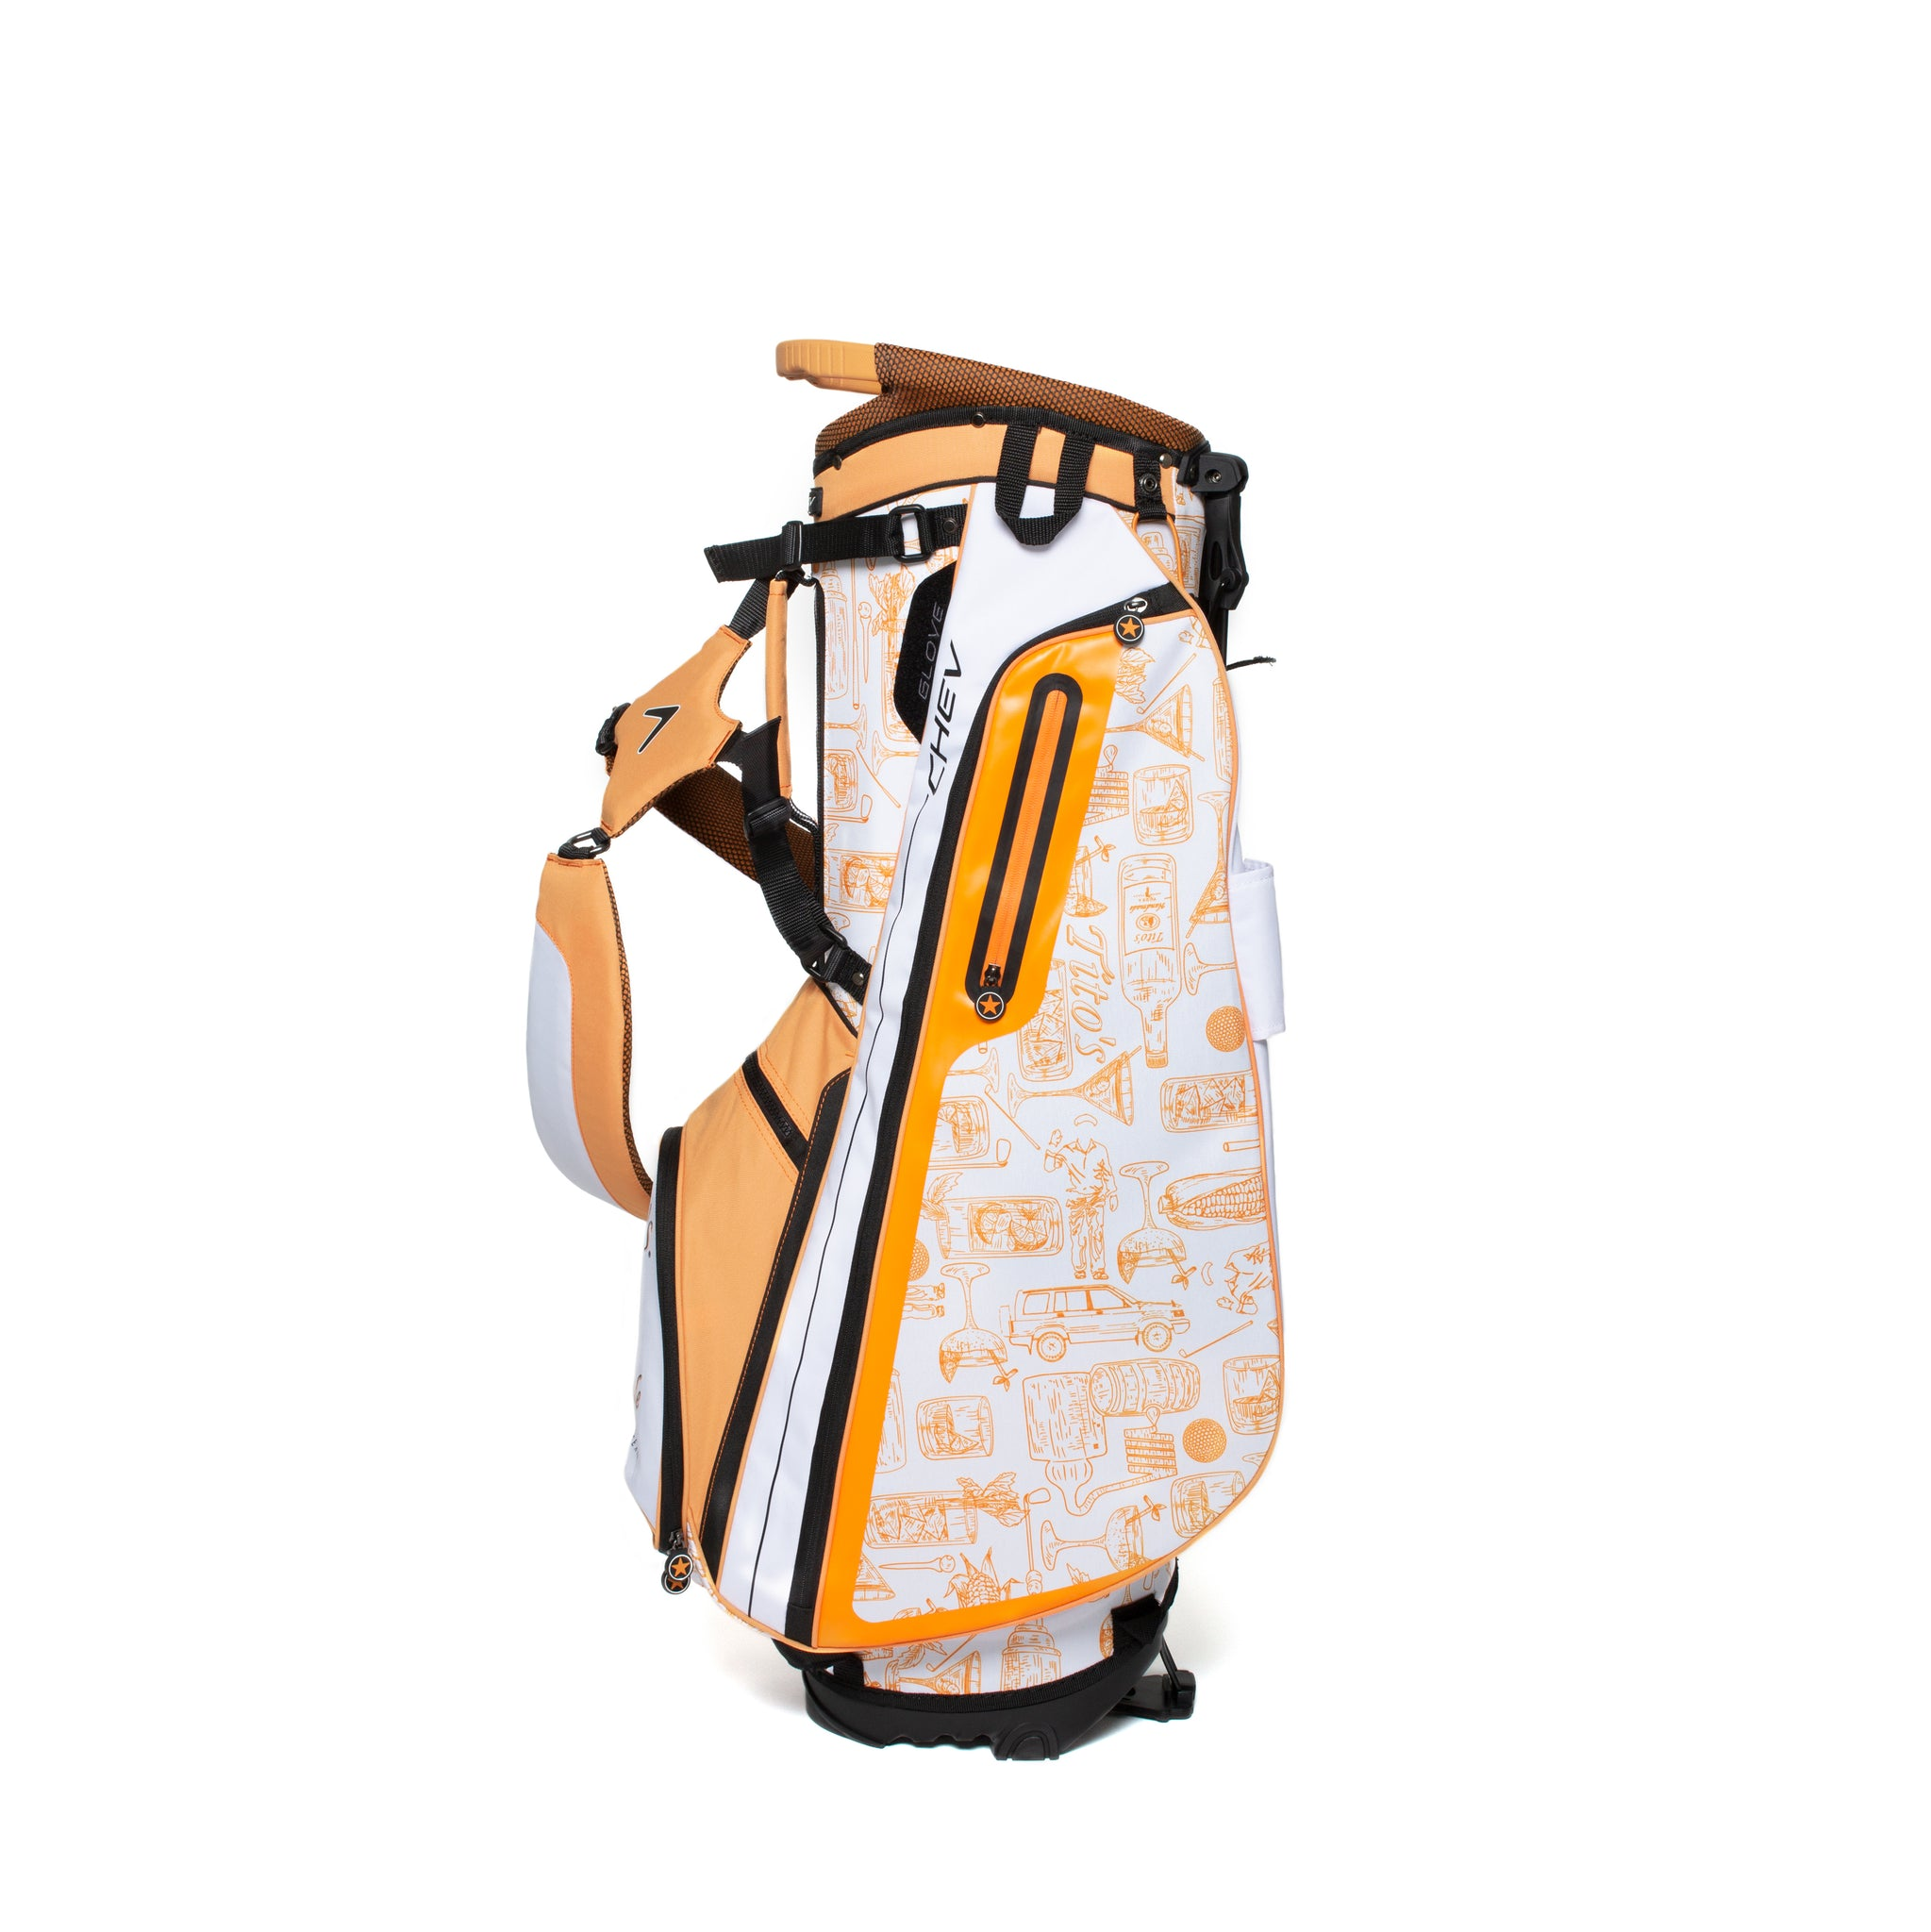 Side of orange and white golf bag with Tito's cocktail illustrations